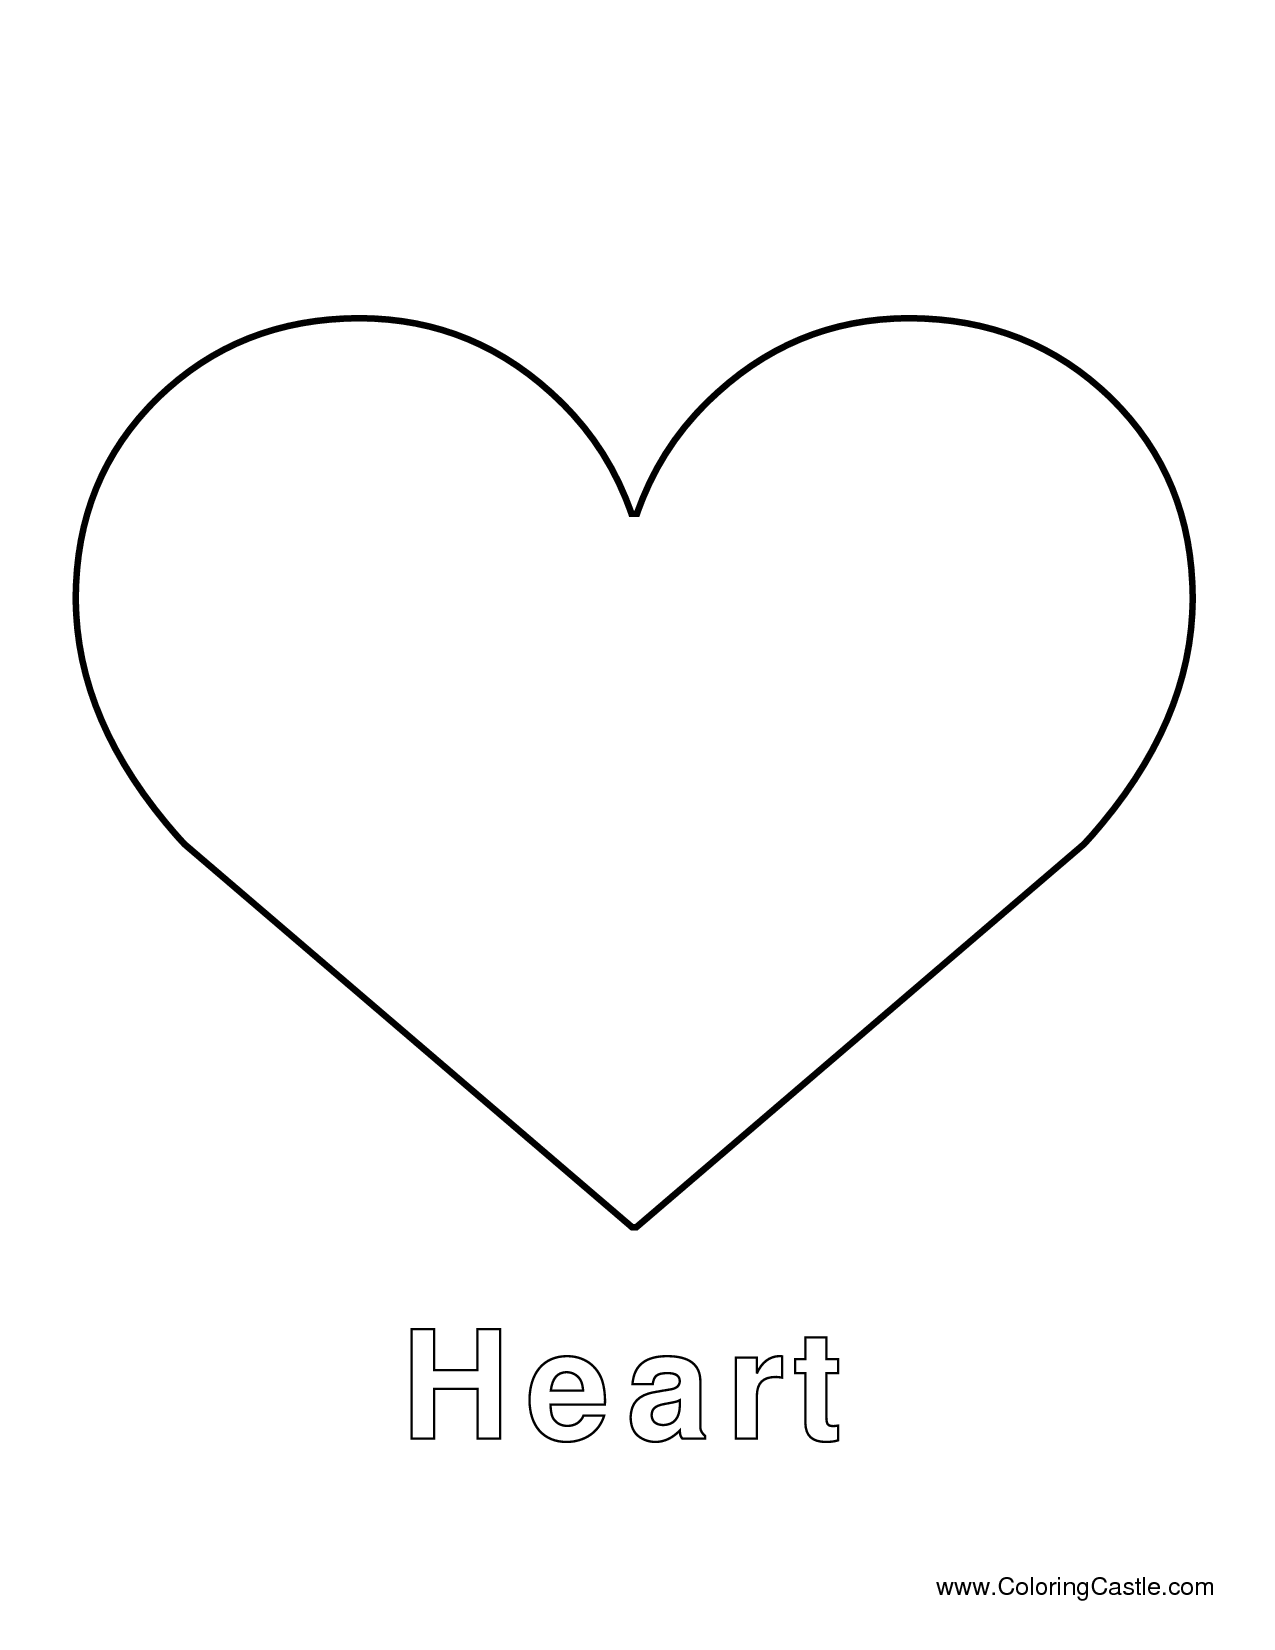 Printable full page large heart pattern. Use the pattern for crafts ...